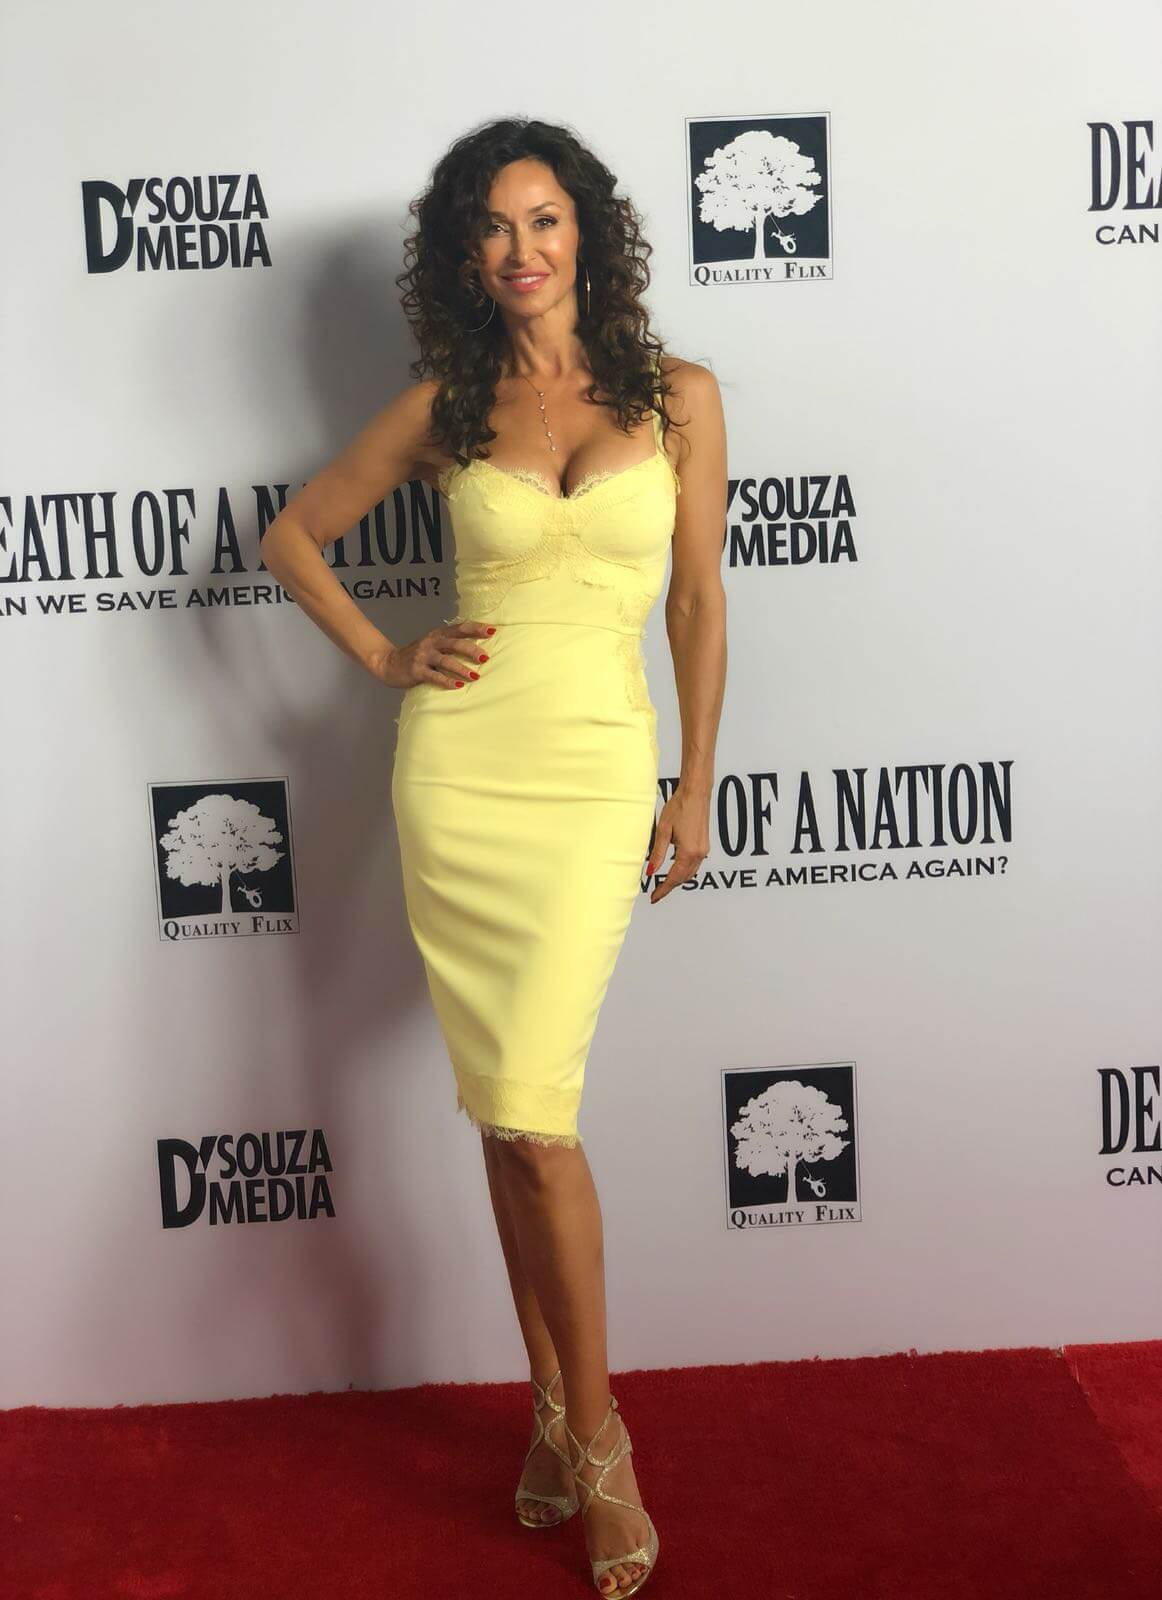 'Death Of A Nation' Premiere at Regal Cinemas